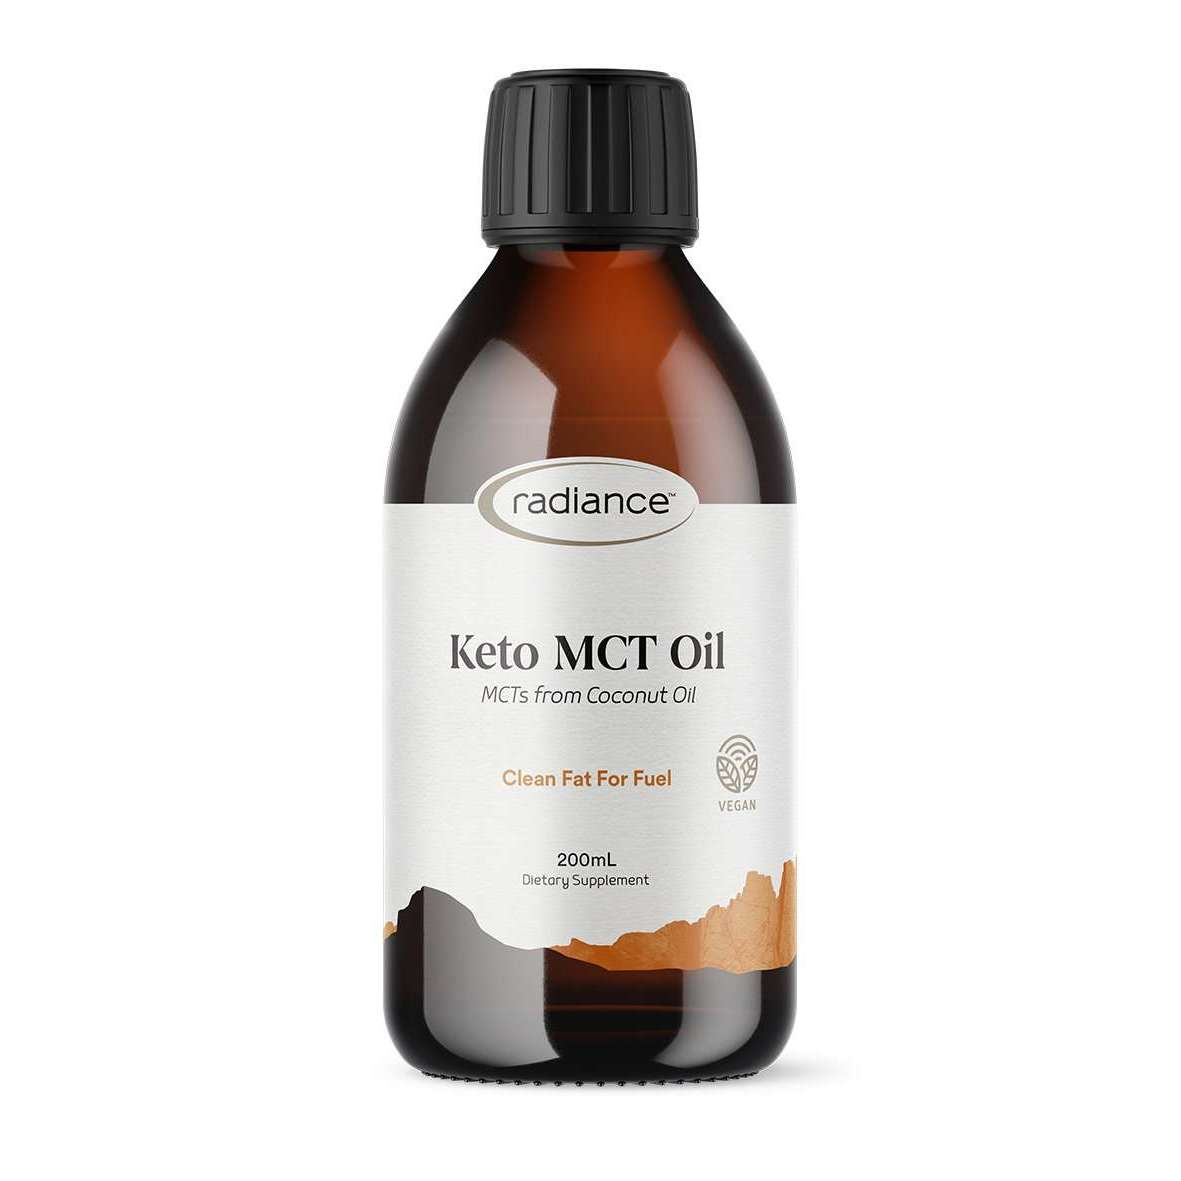 Radiance Keto MCT Oil 200ml